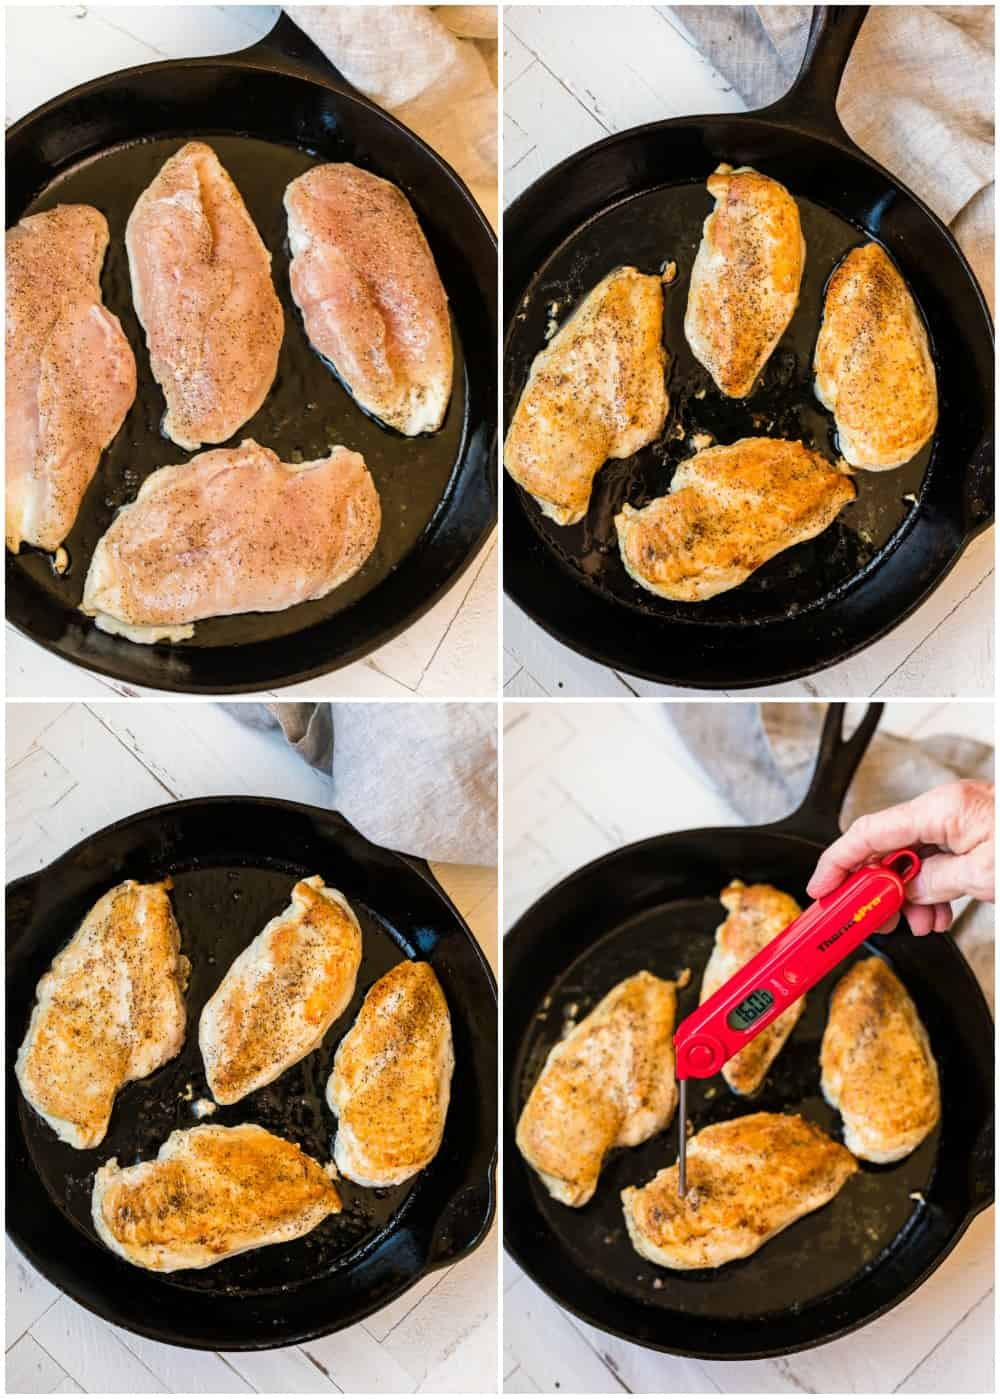 Four photos to show how to sear the chicken